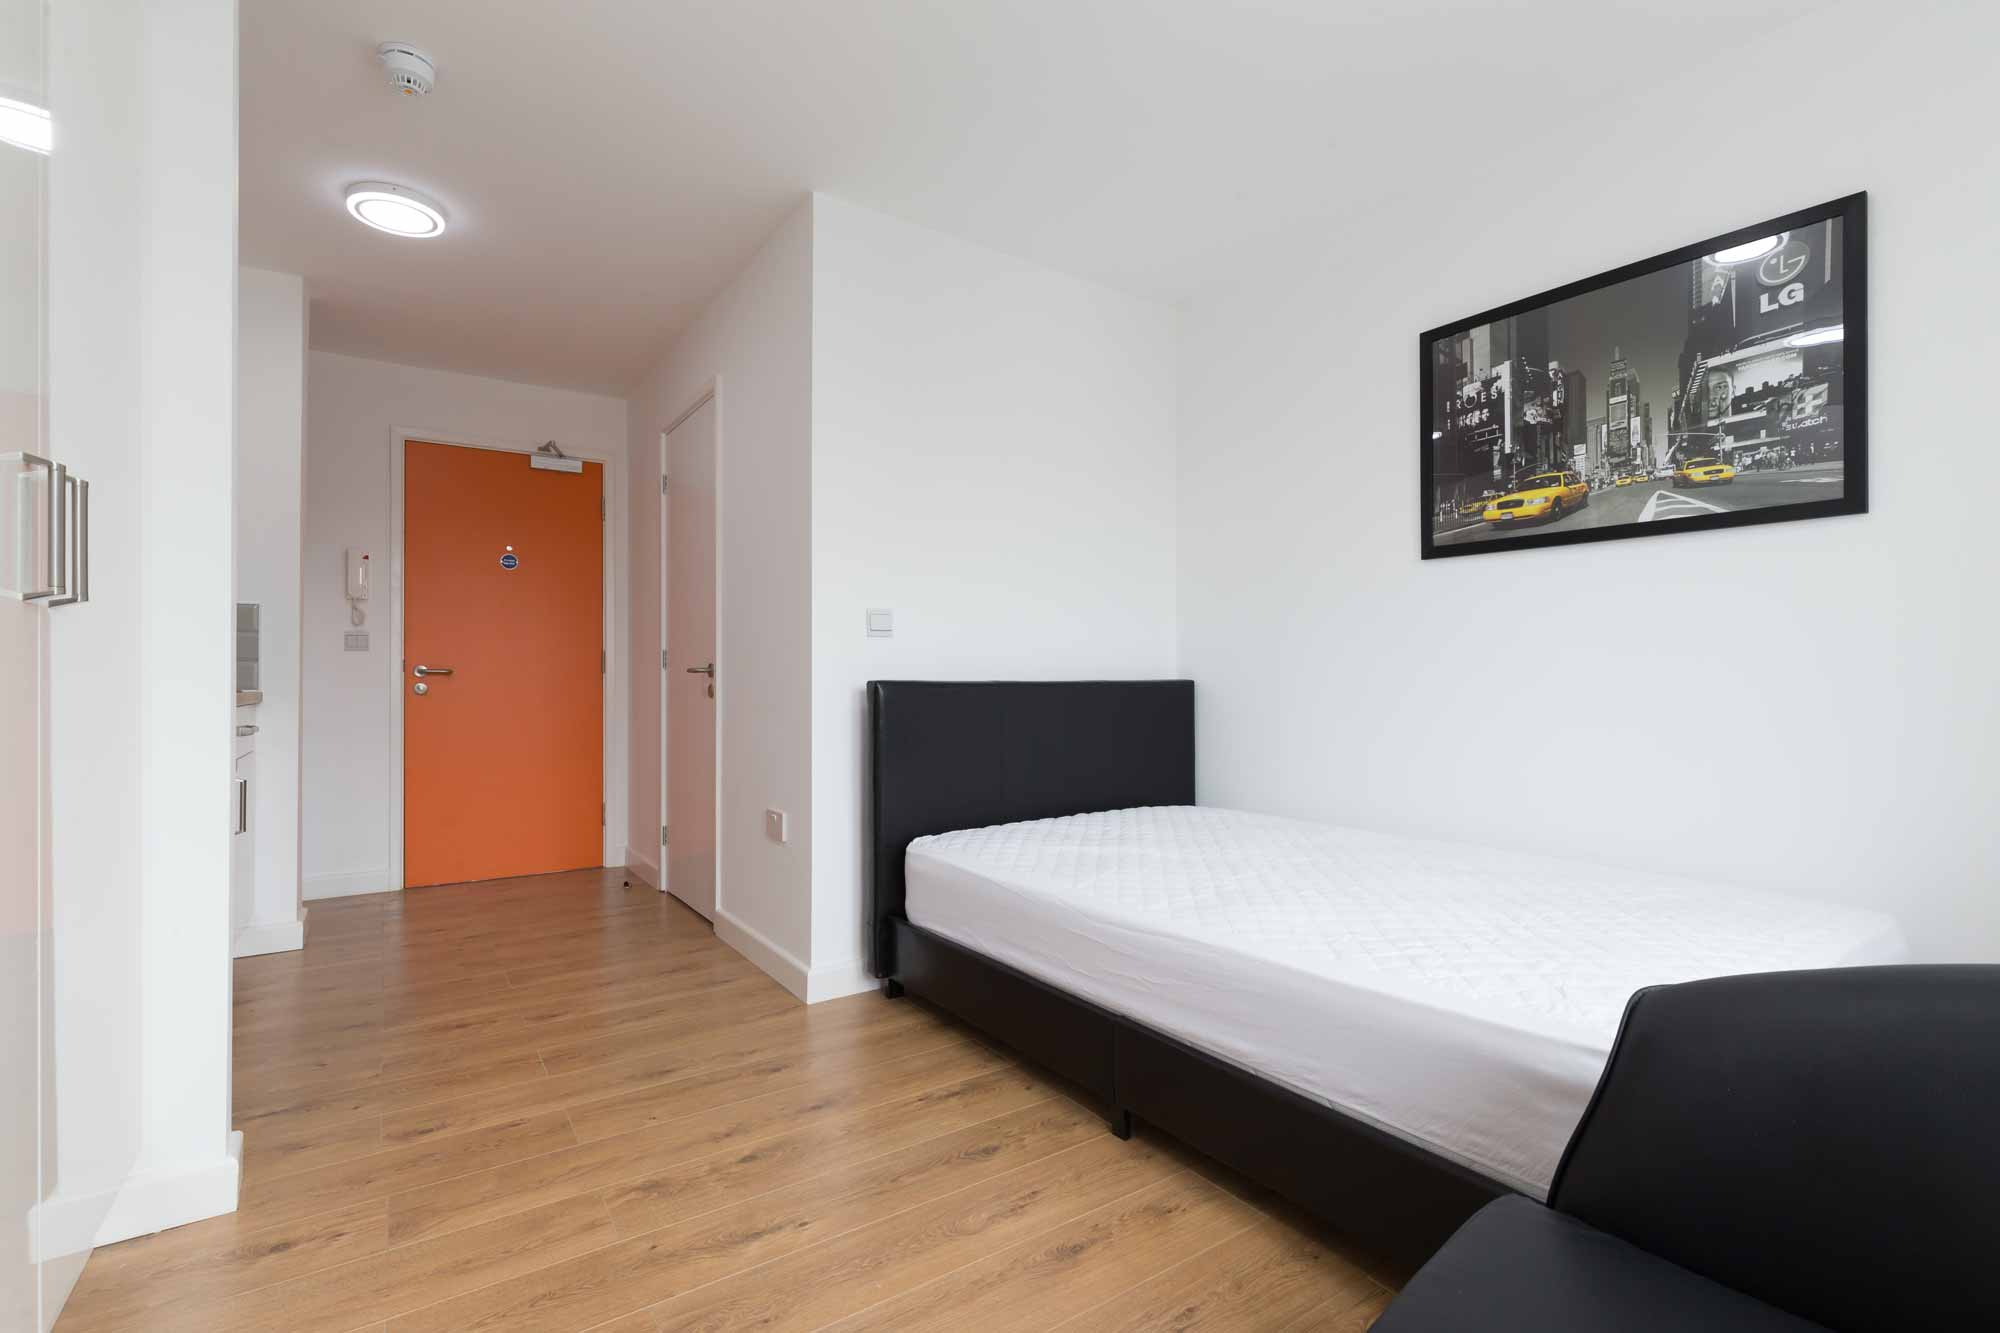 student accommodation newcastle under lyme studio unit bedroom